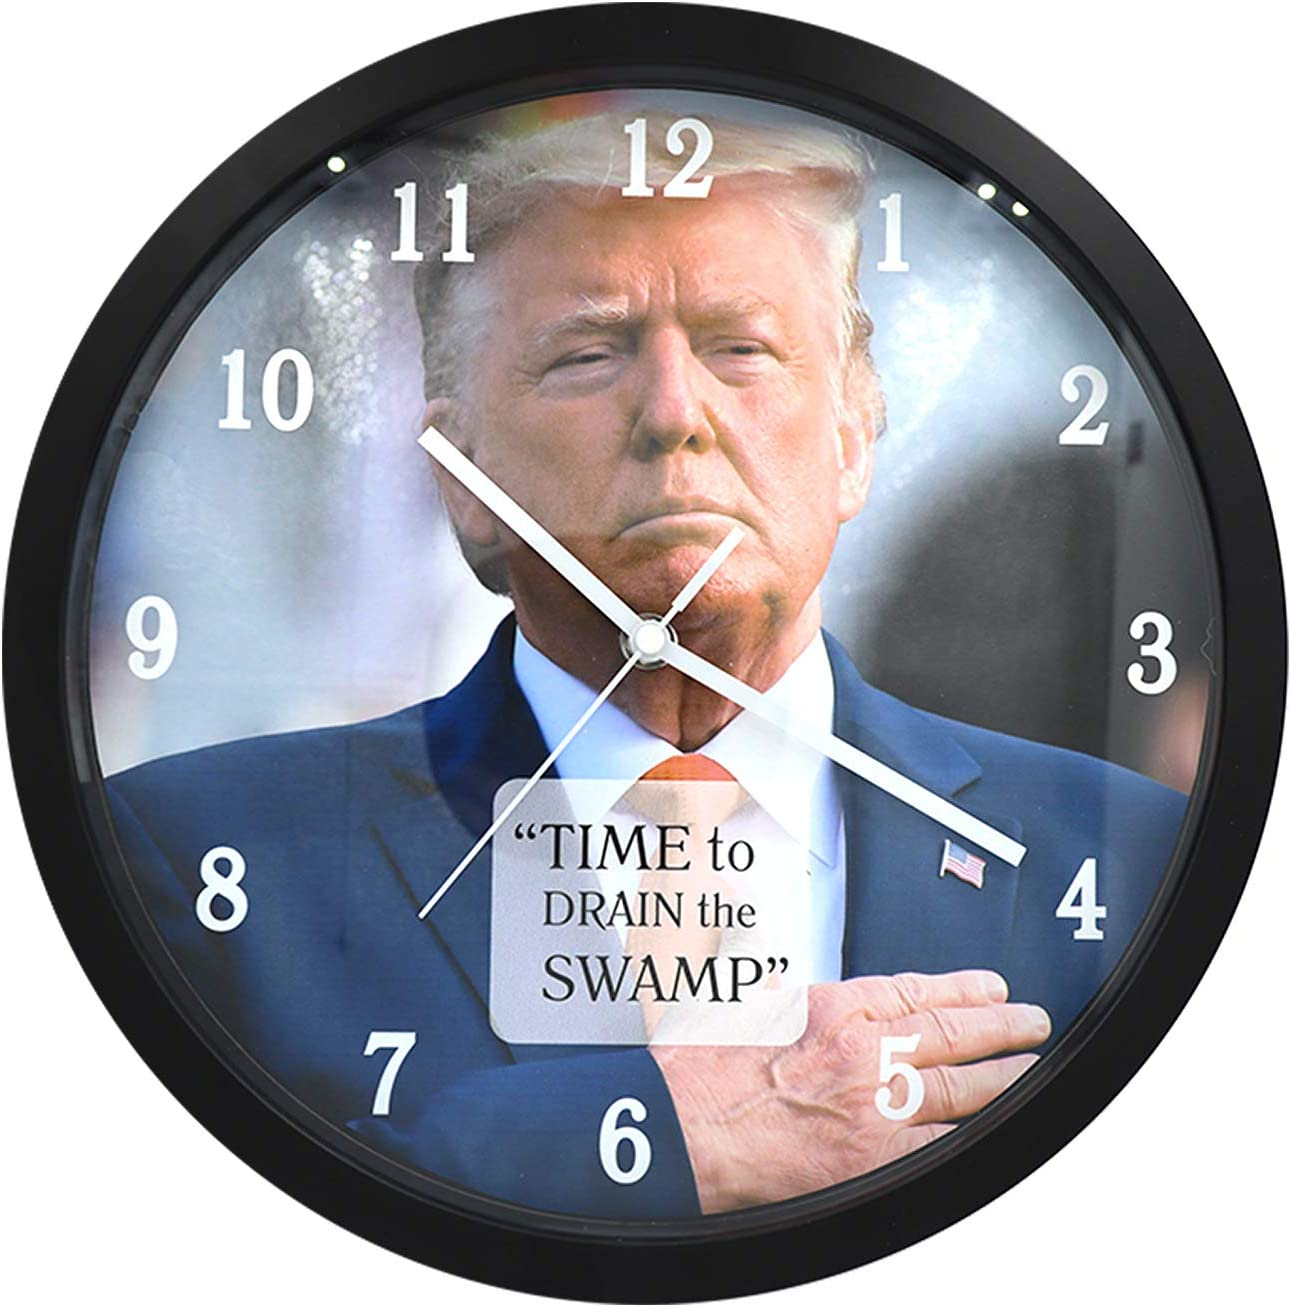 Patriot Gear Donald Trump Wall Clock 12 Time To Drain The Swamp Kitchen Dining